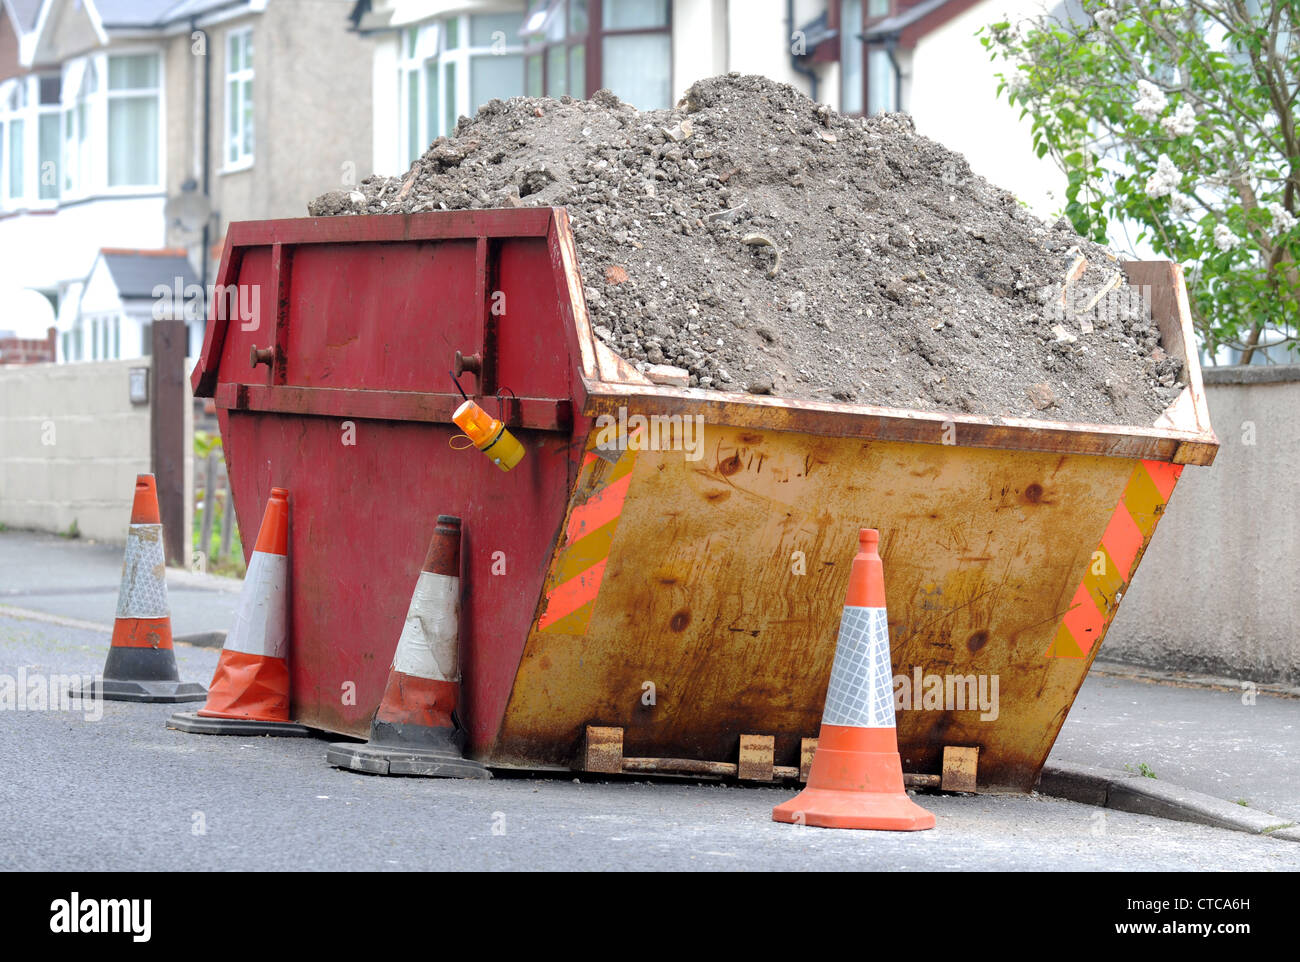 Skip, rubbish skip on residential street, Britain, UK - Stock Image